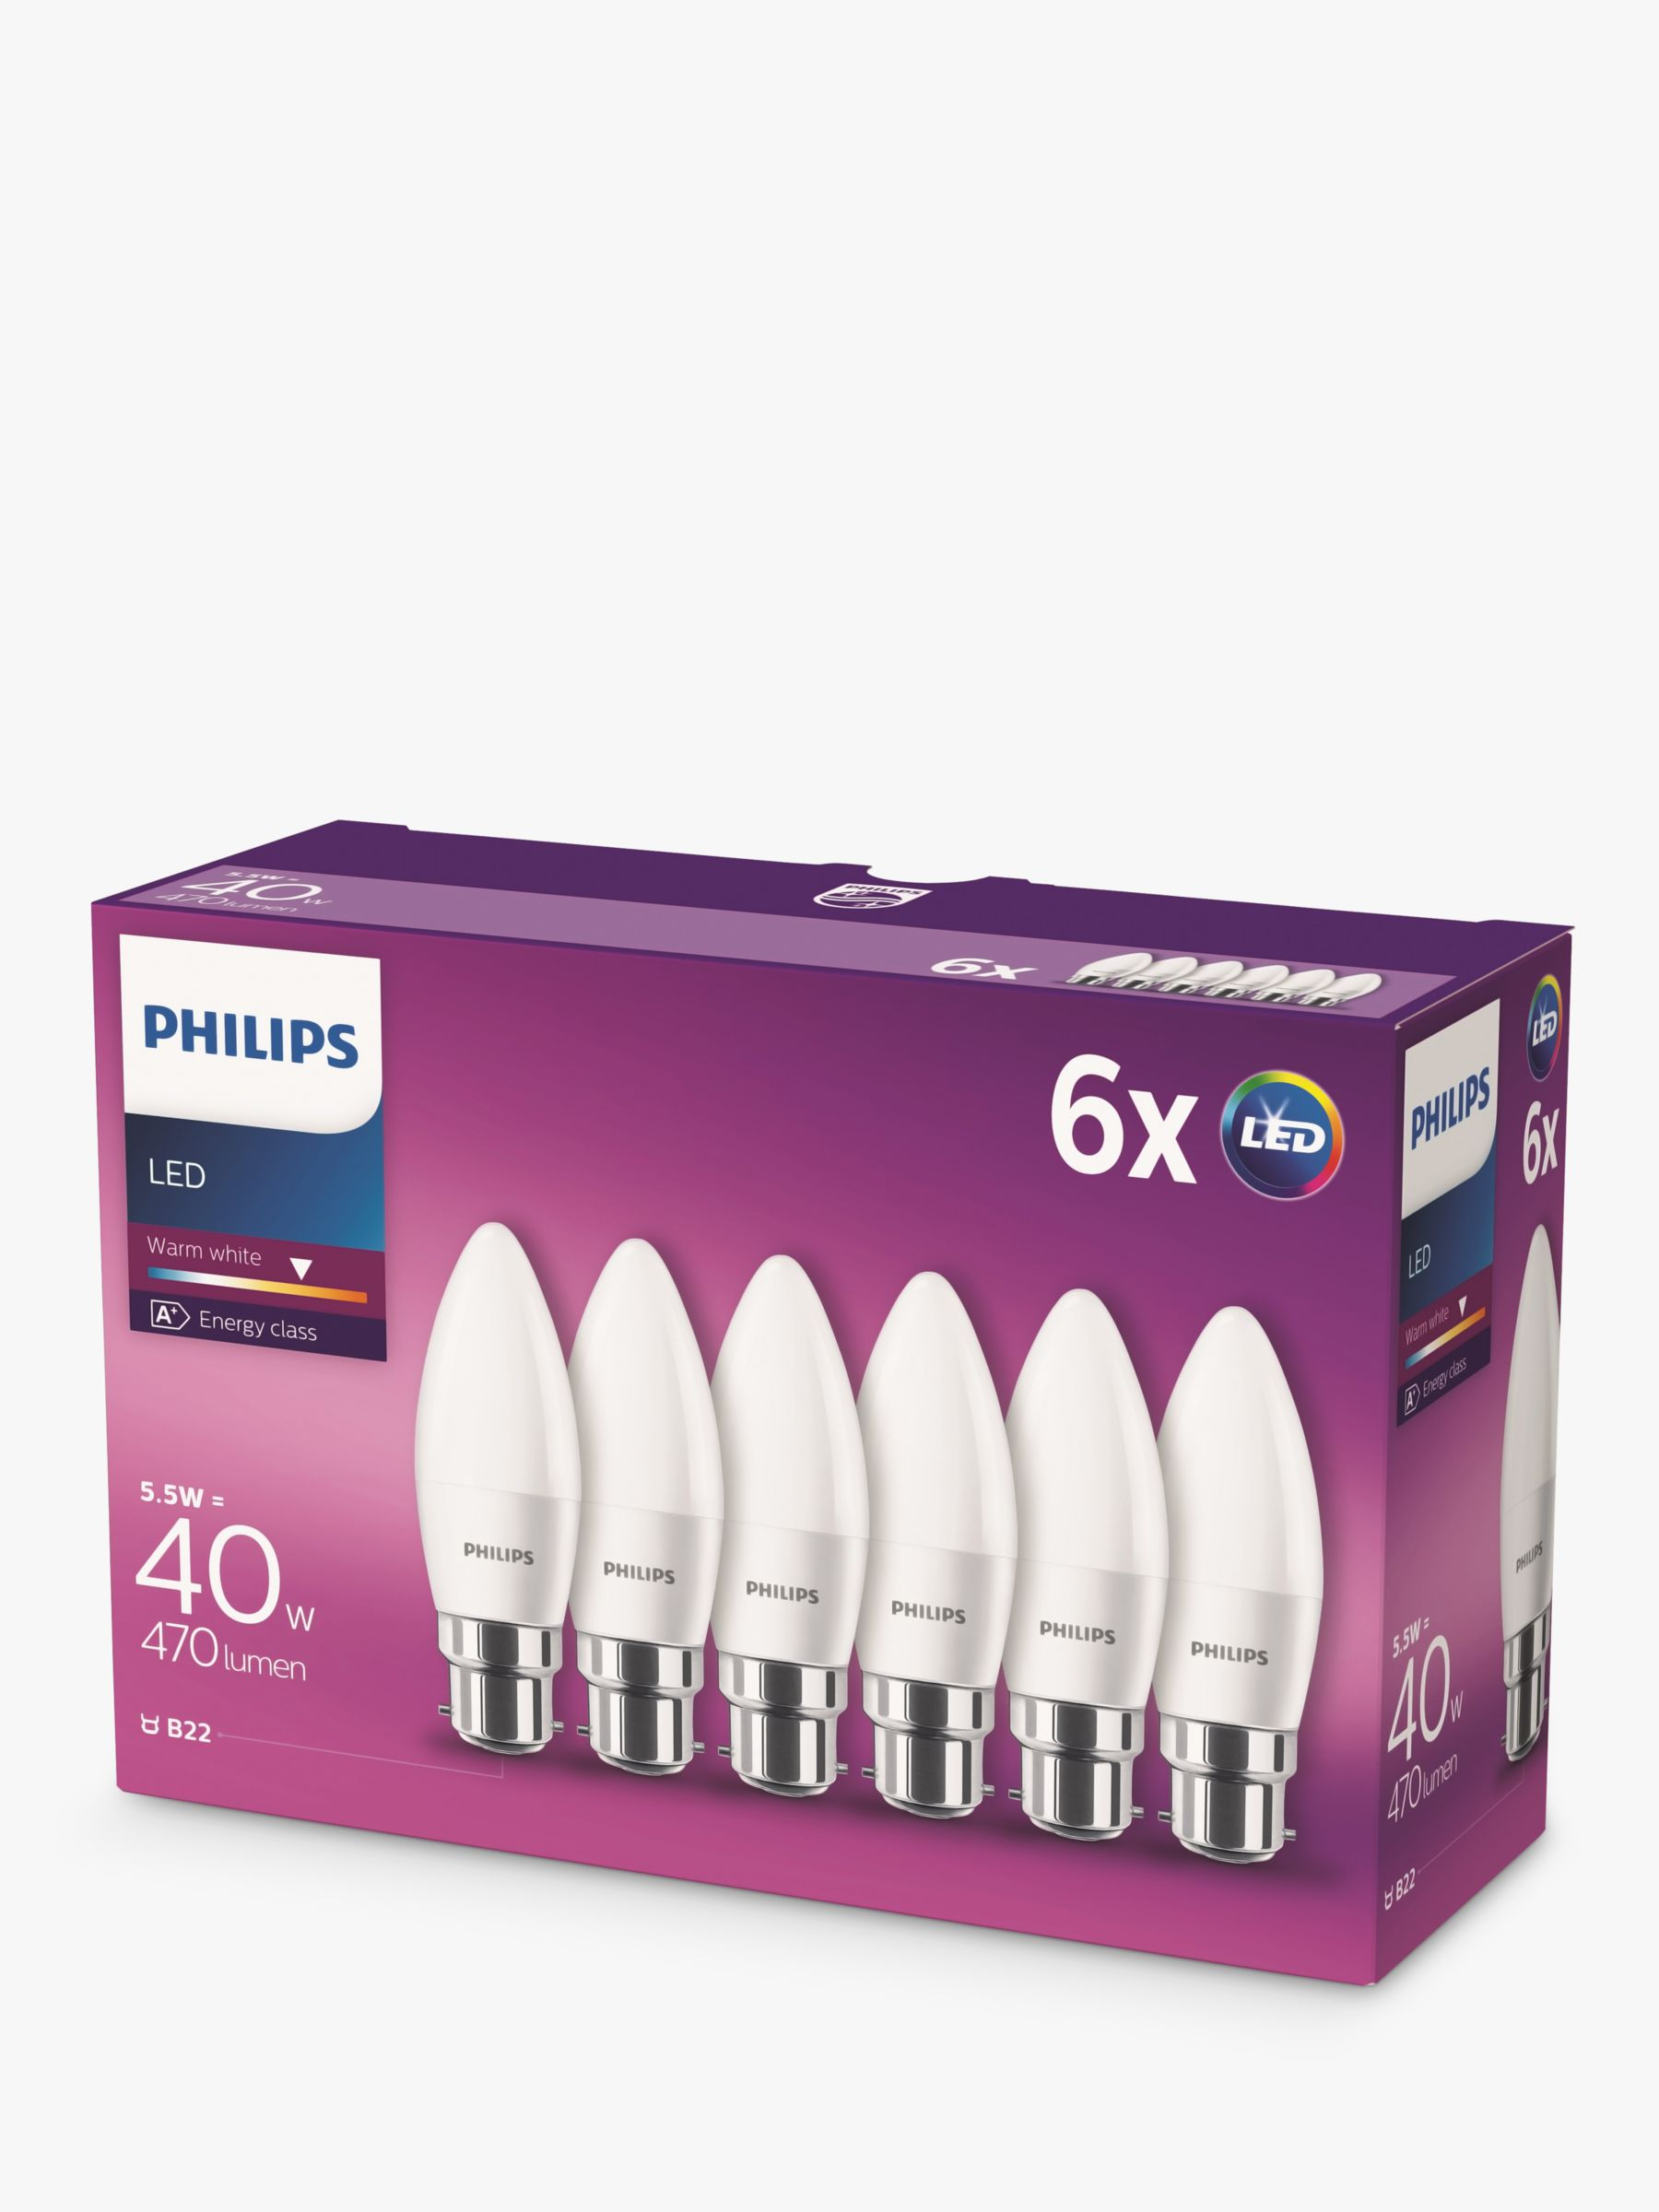 Philips 5.5W BC Candle LED Light Bulb, Frosted, Pack of 6